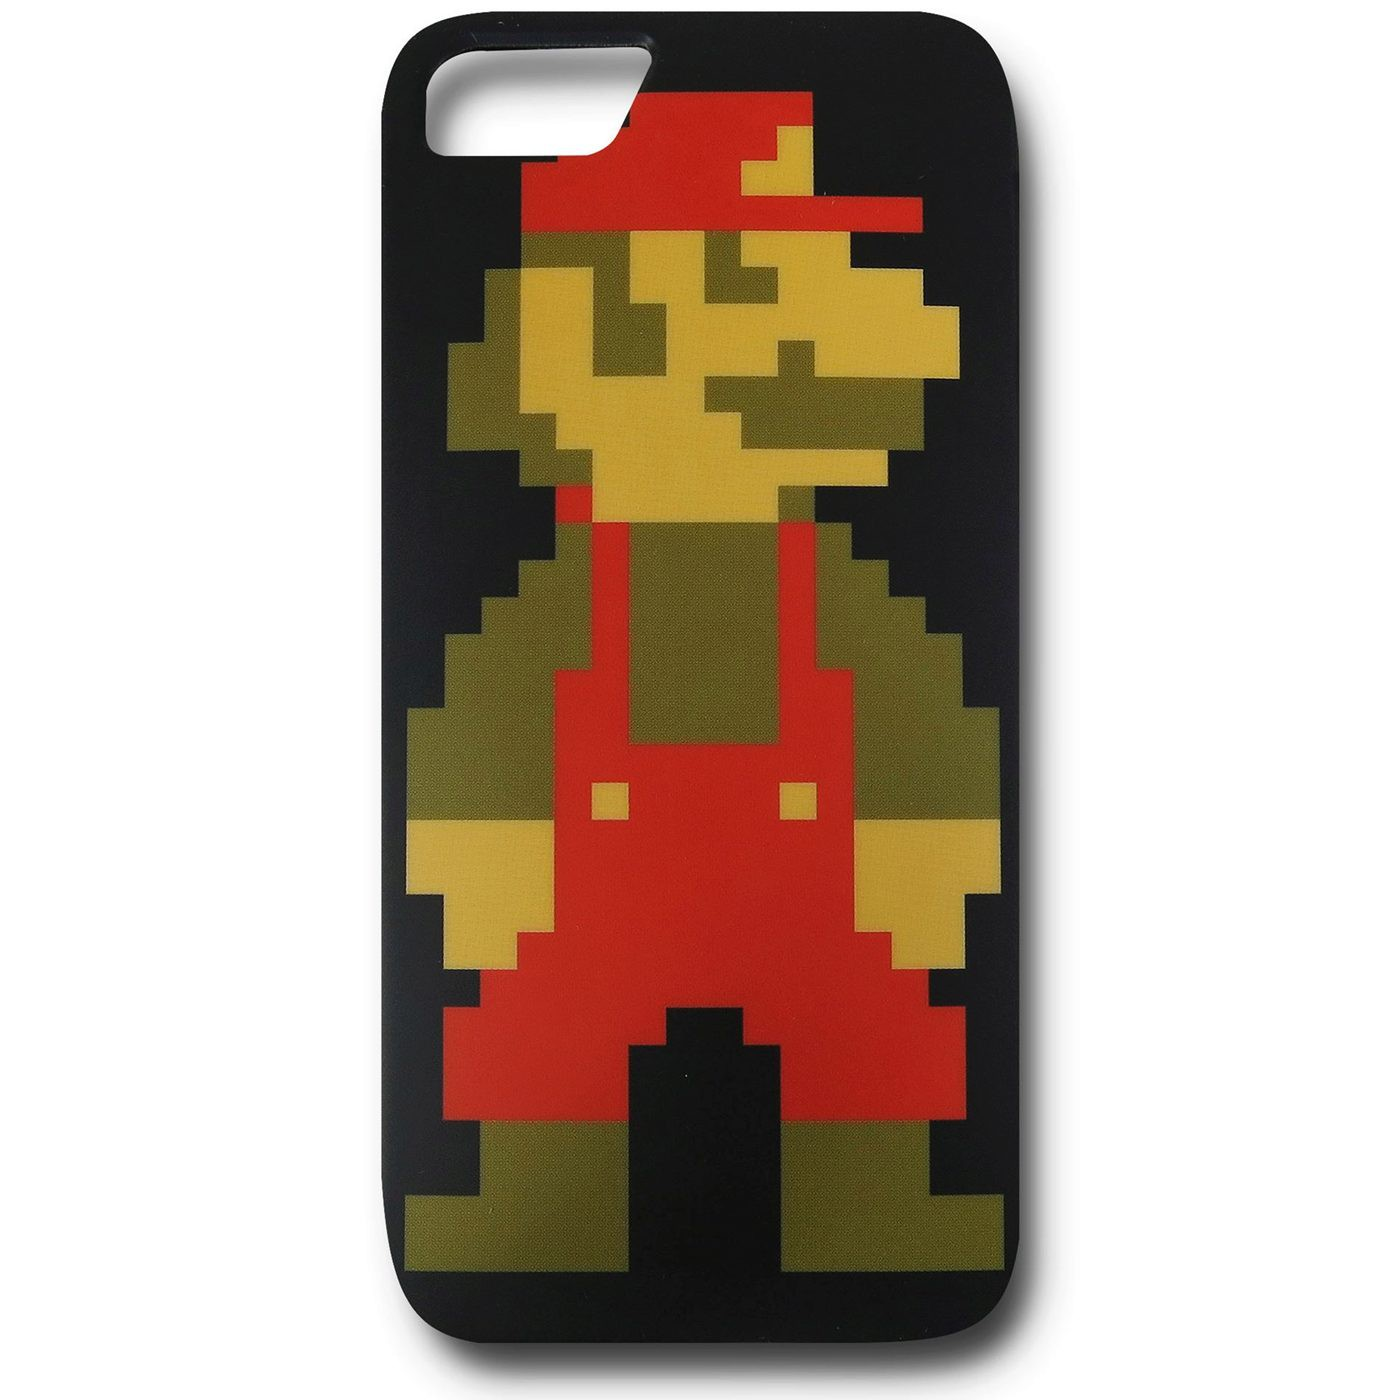 Nintendo Big Mario iPhone 5 Case